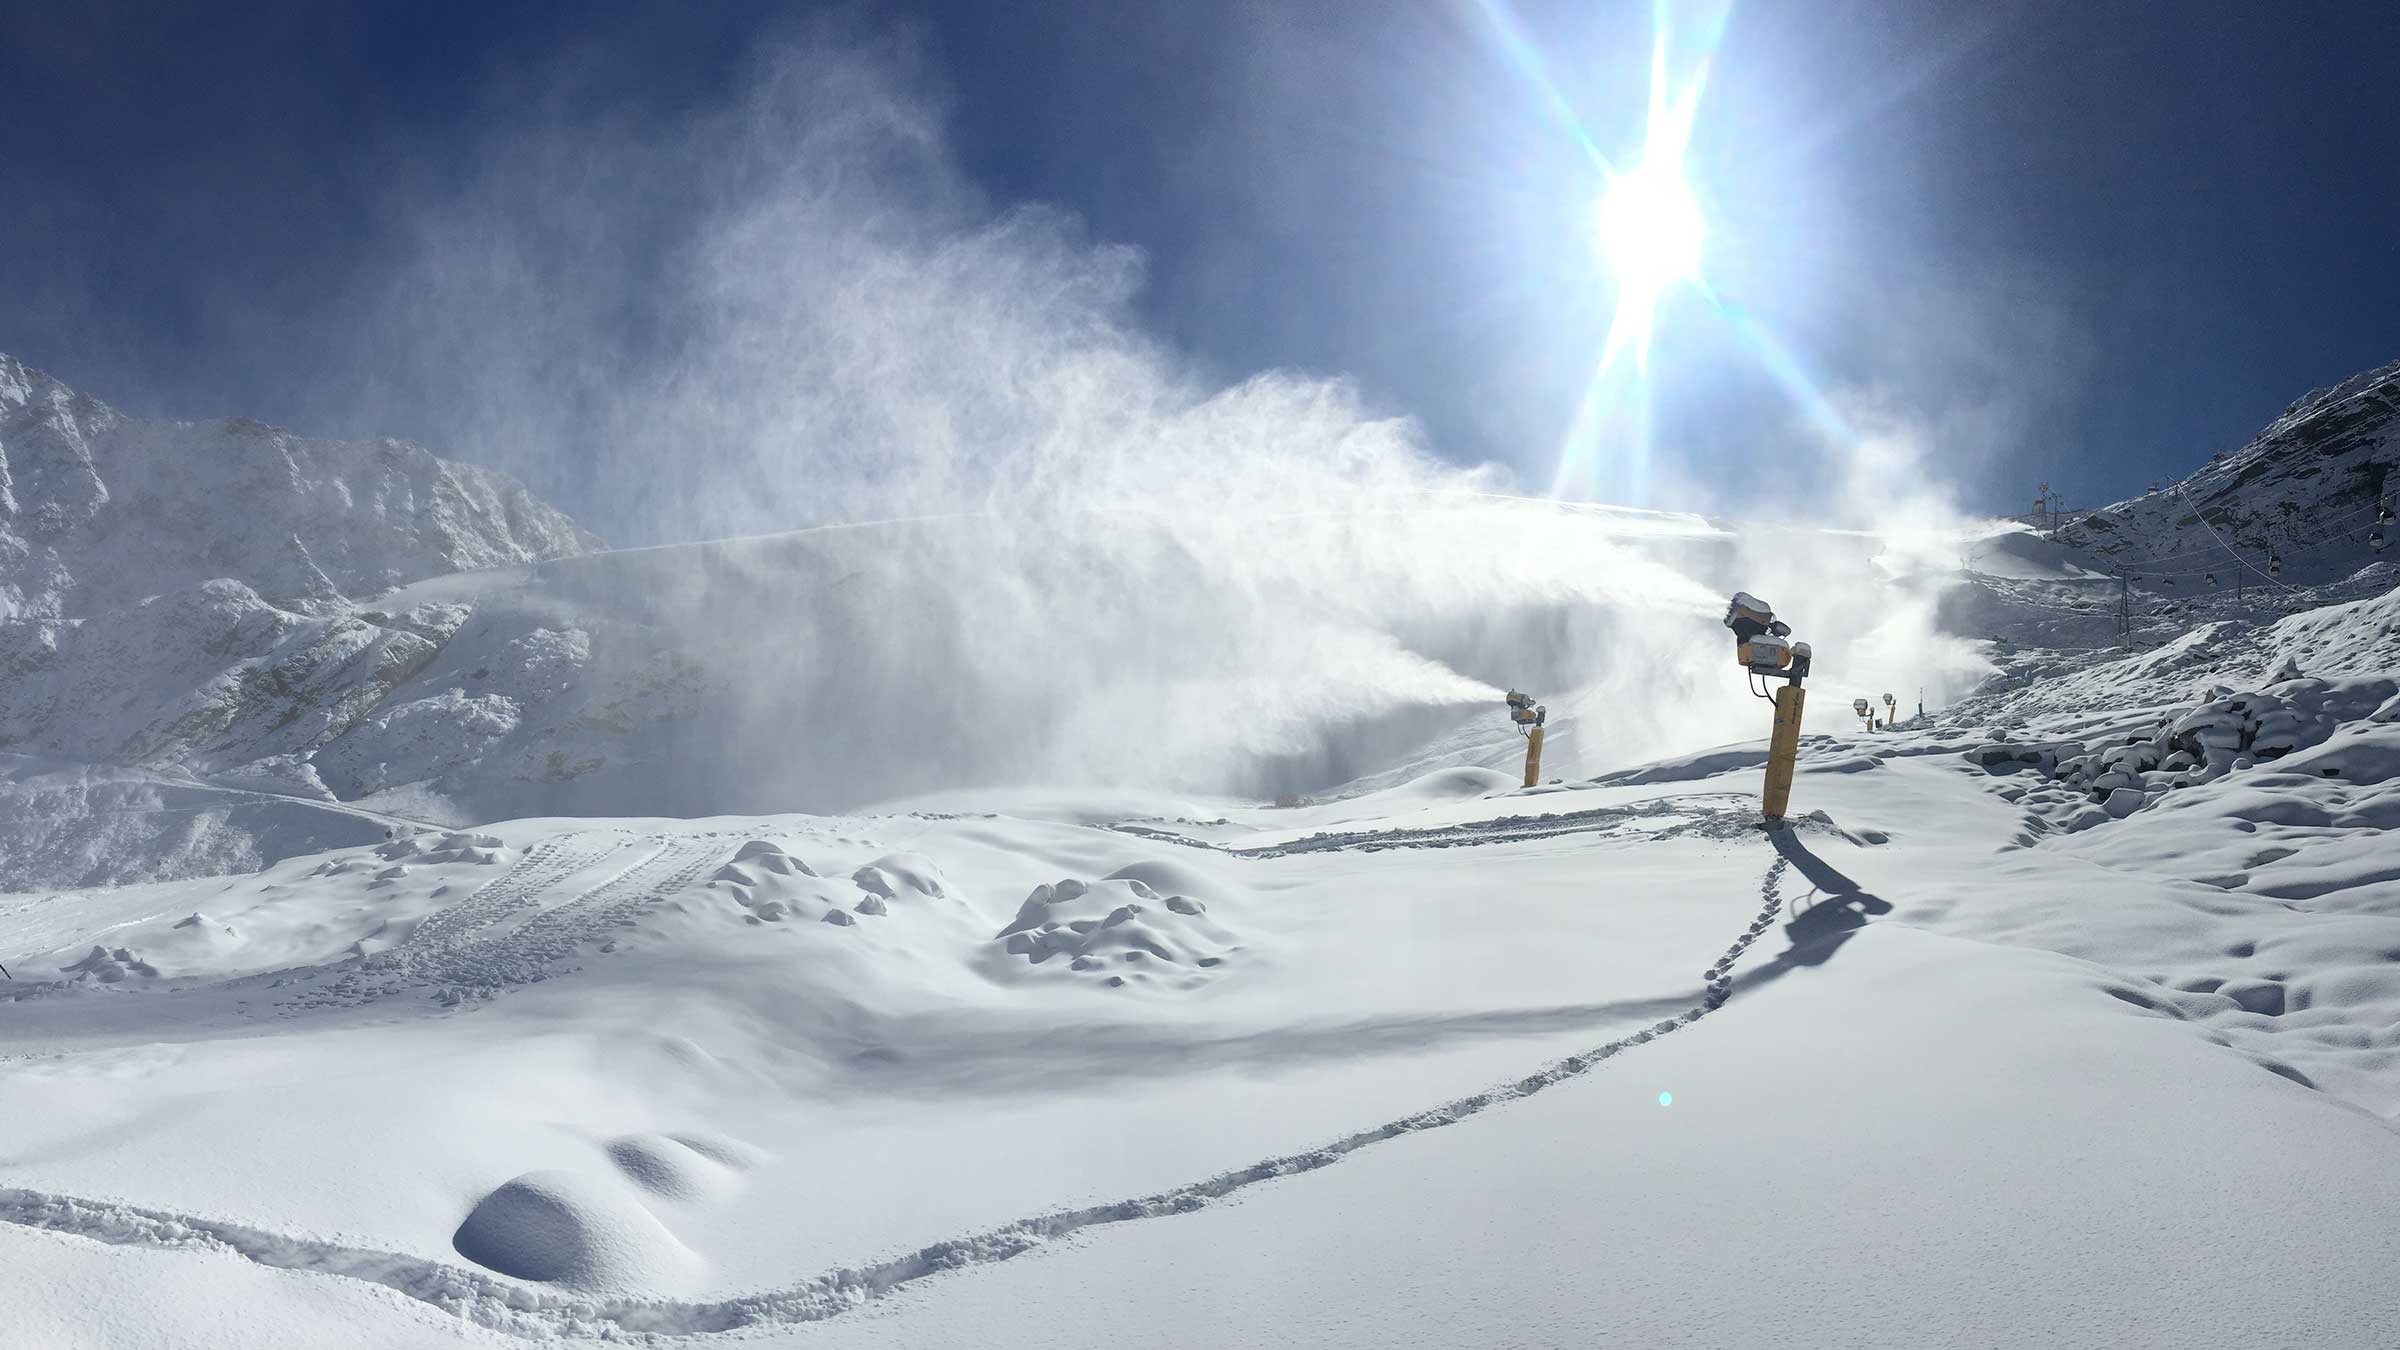 Snow Update From The Heartbeat of the Alps